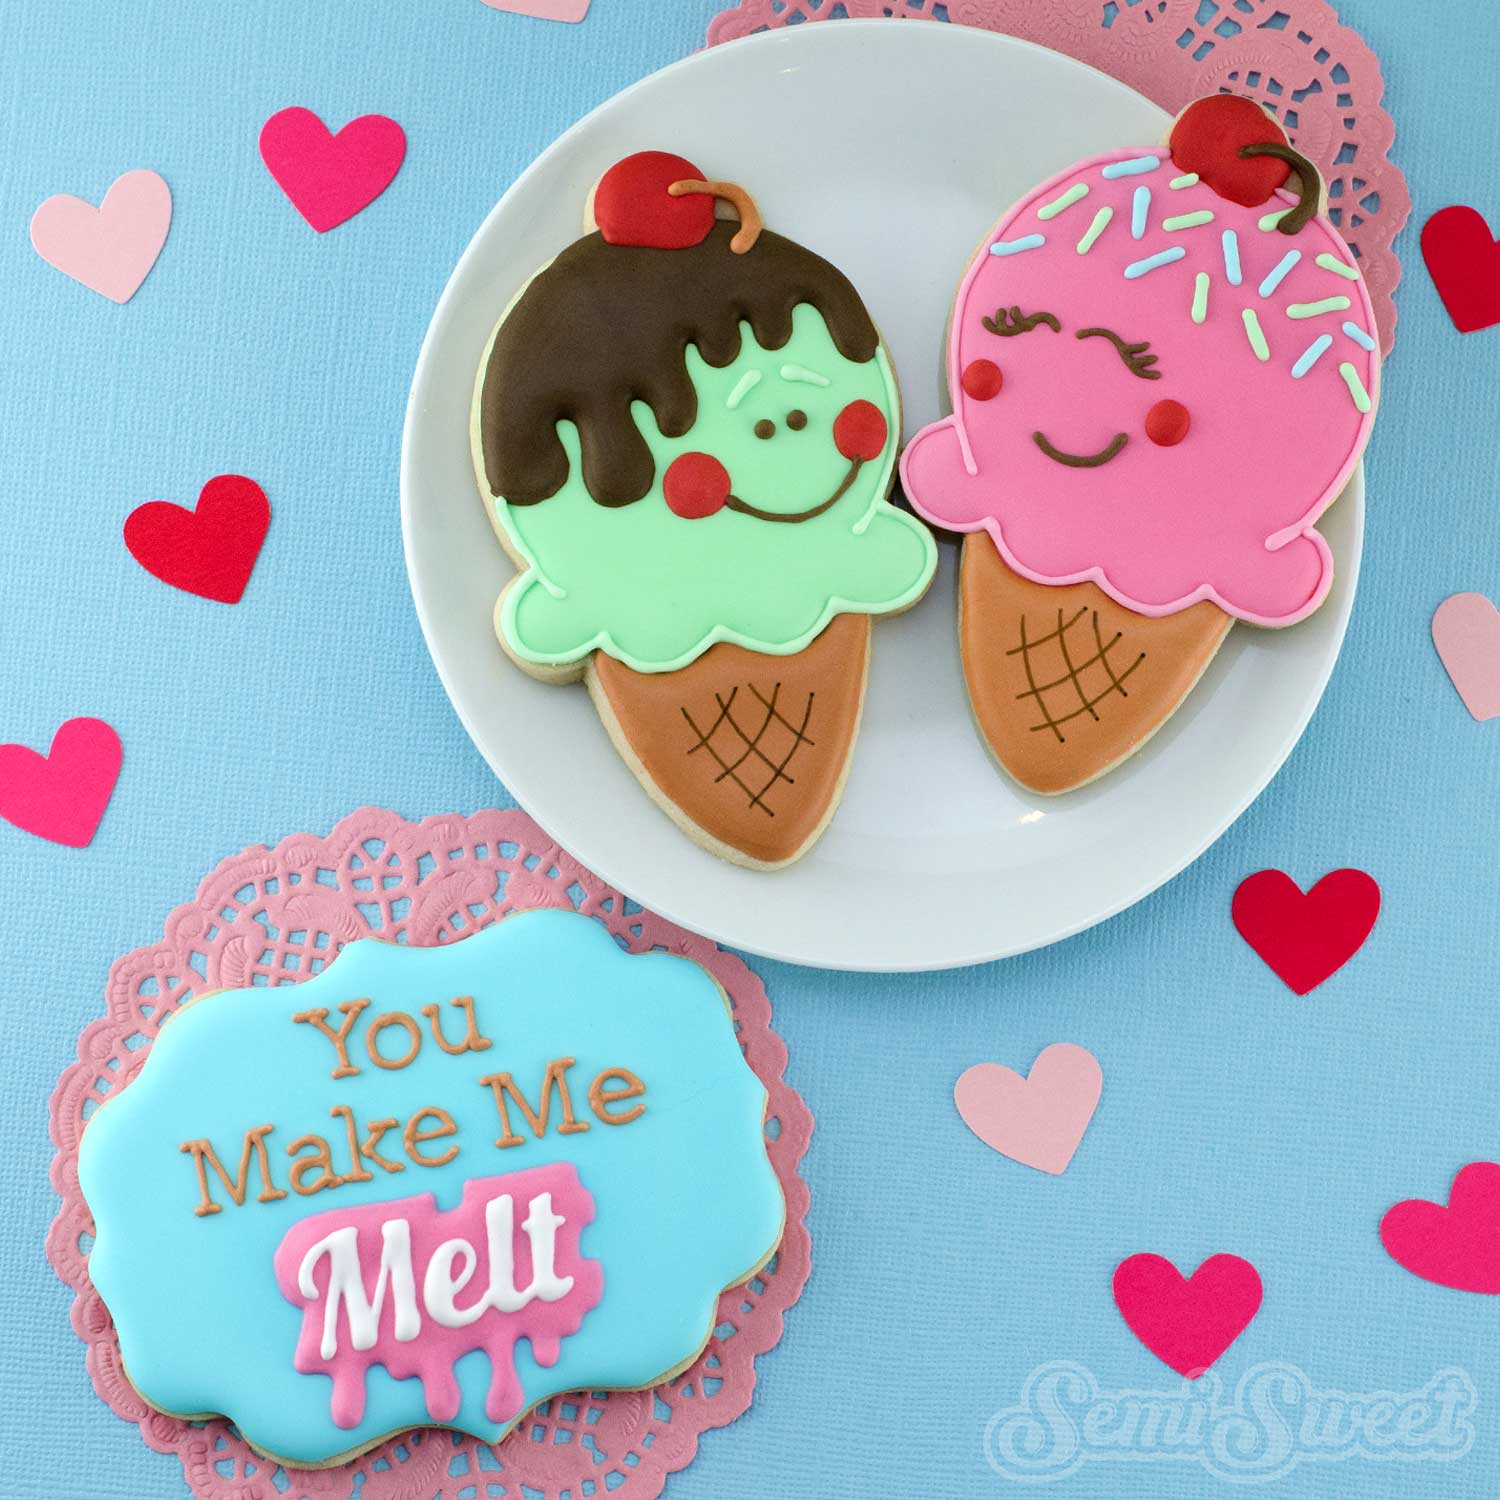 How to Make Cute Ice Cream Cone Cookies